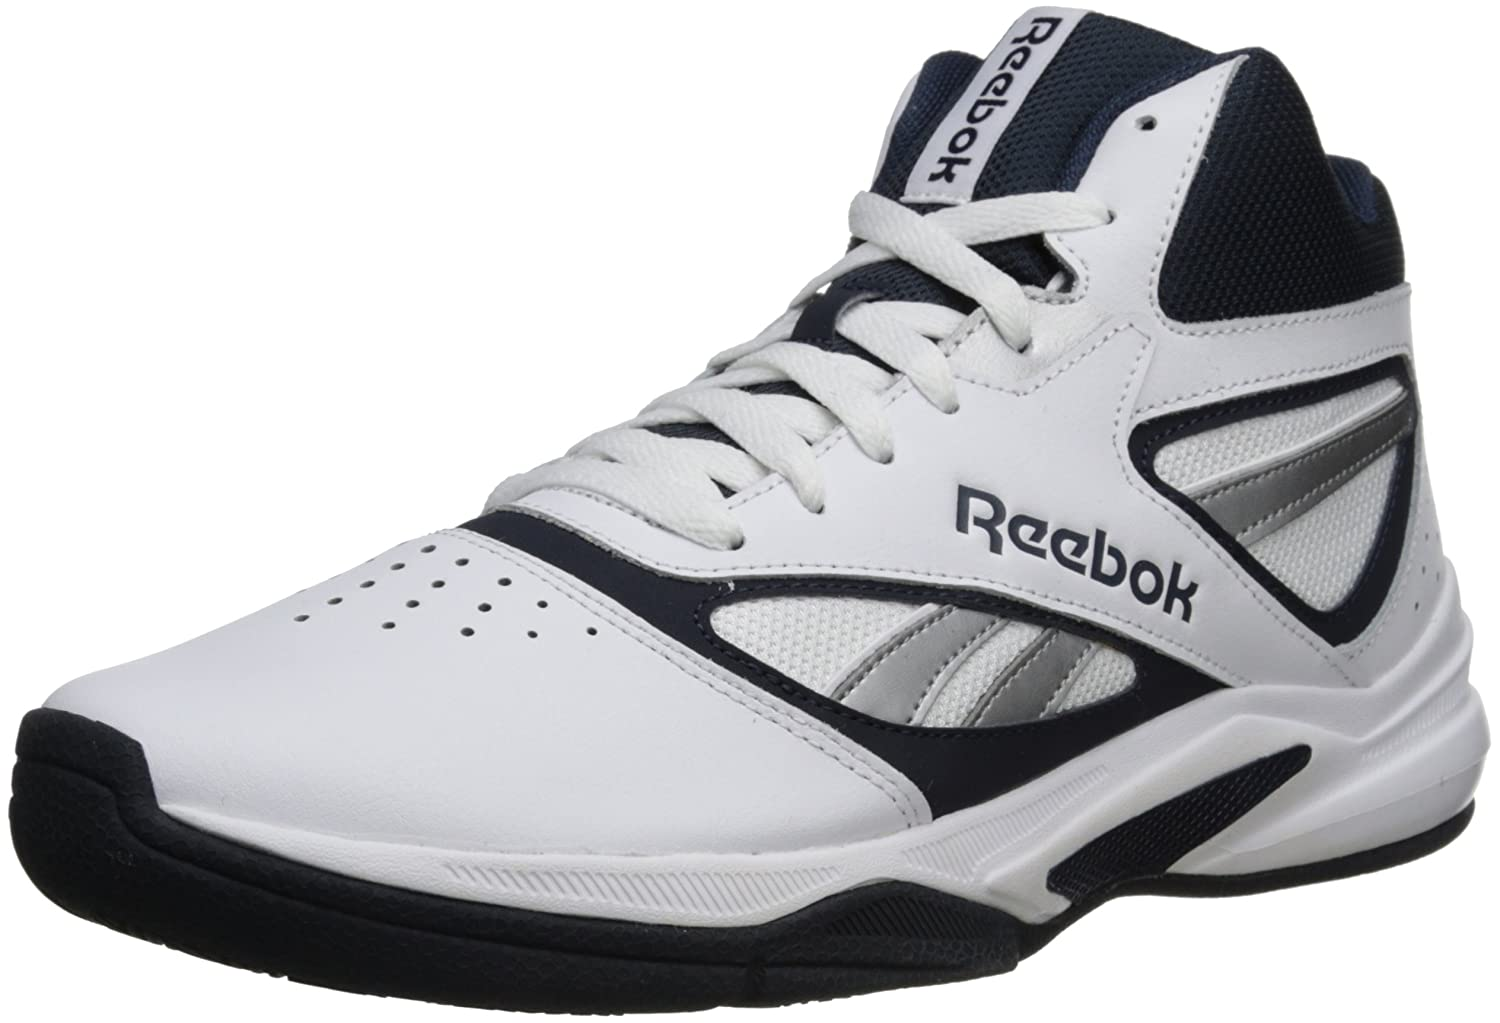 Reebok Men's Pro Heritage 1 Basketball Shoe, WhiteReebok